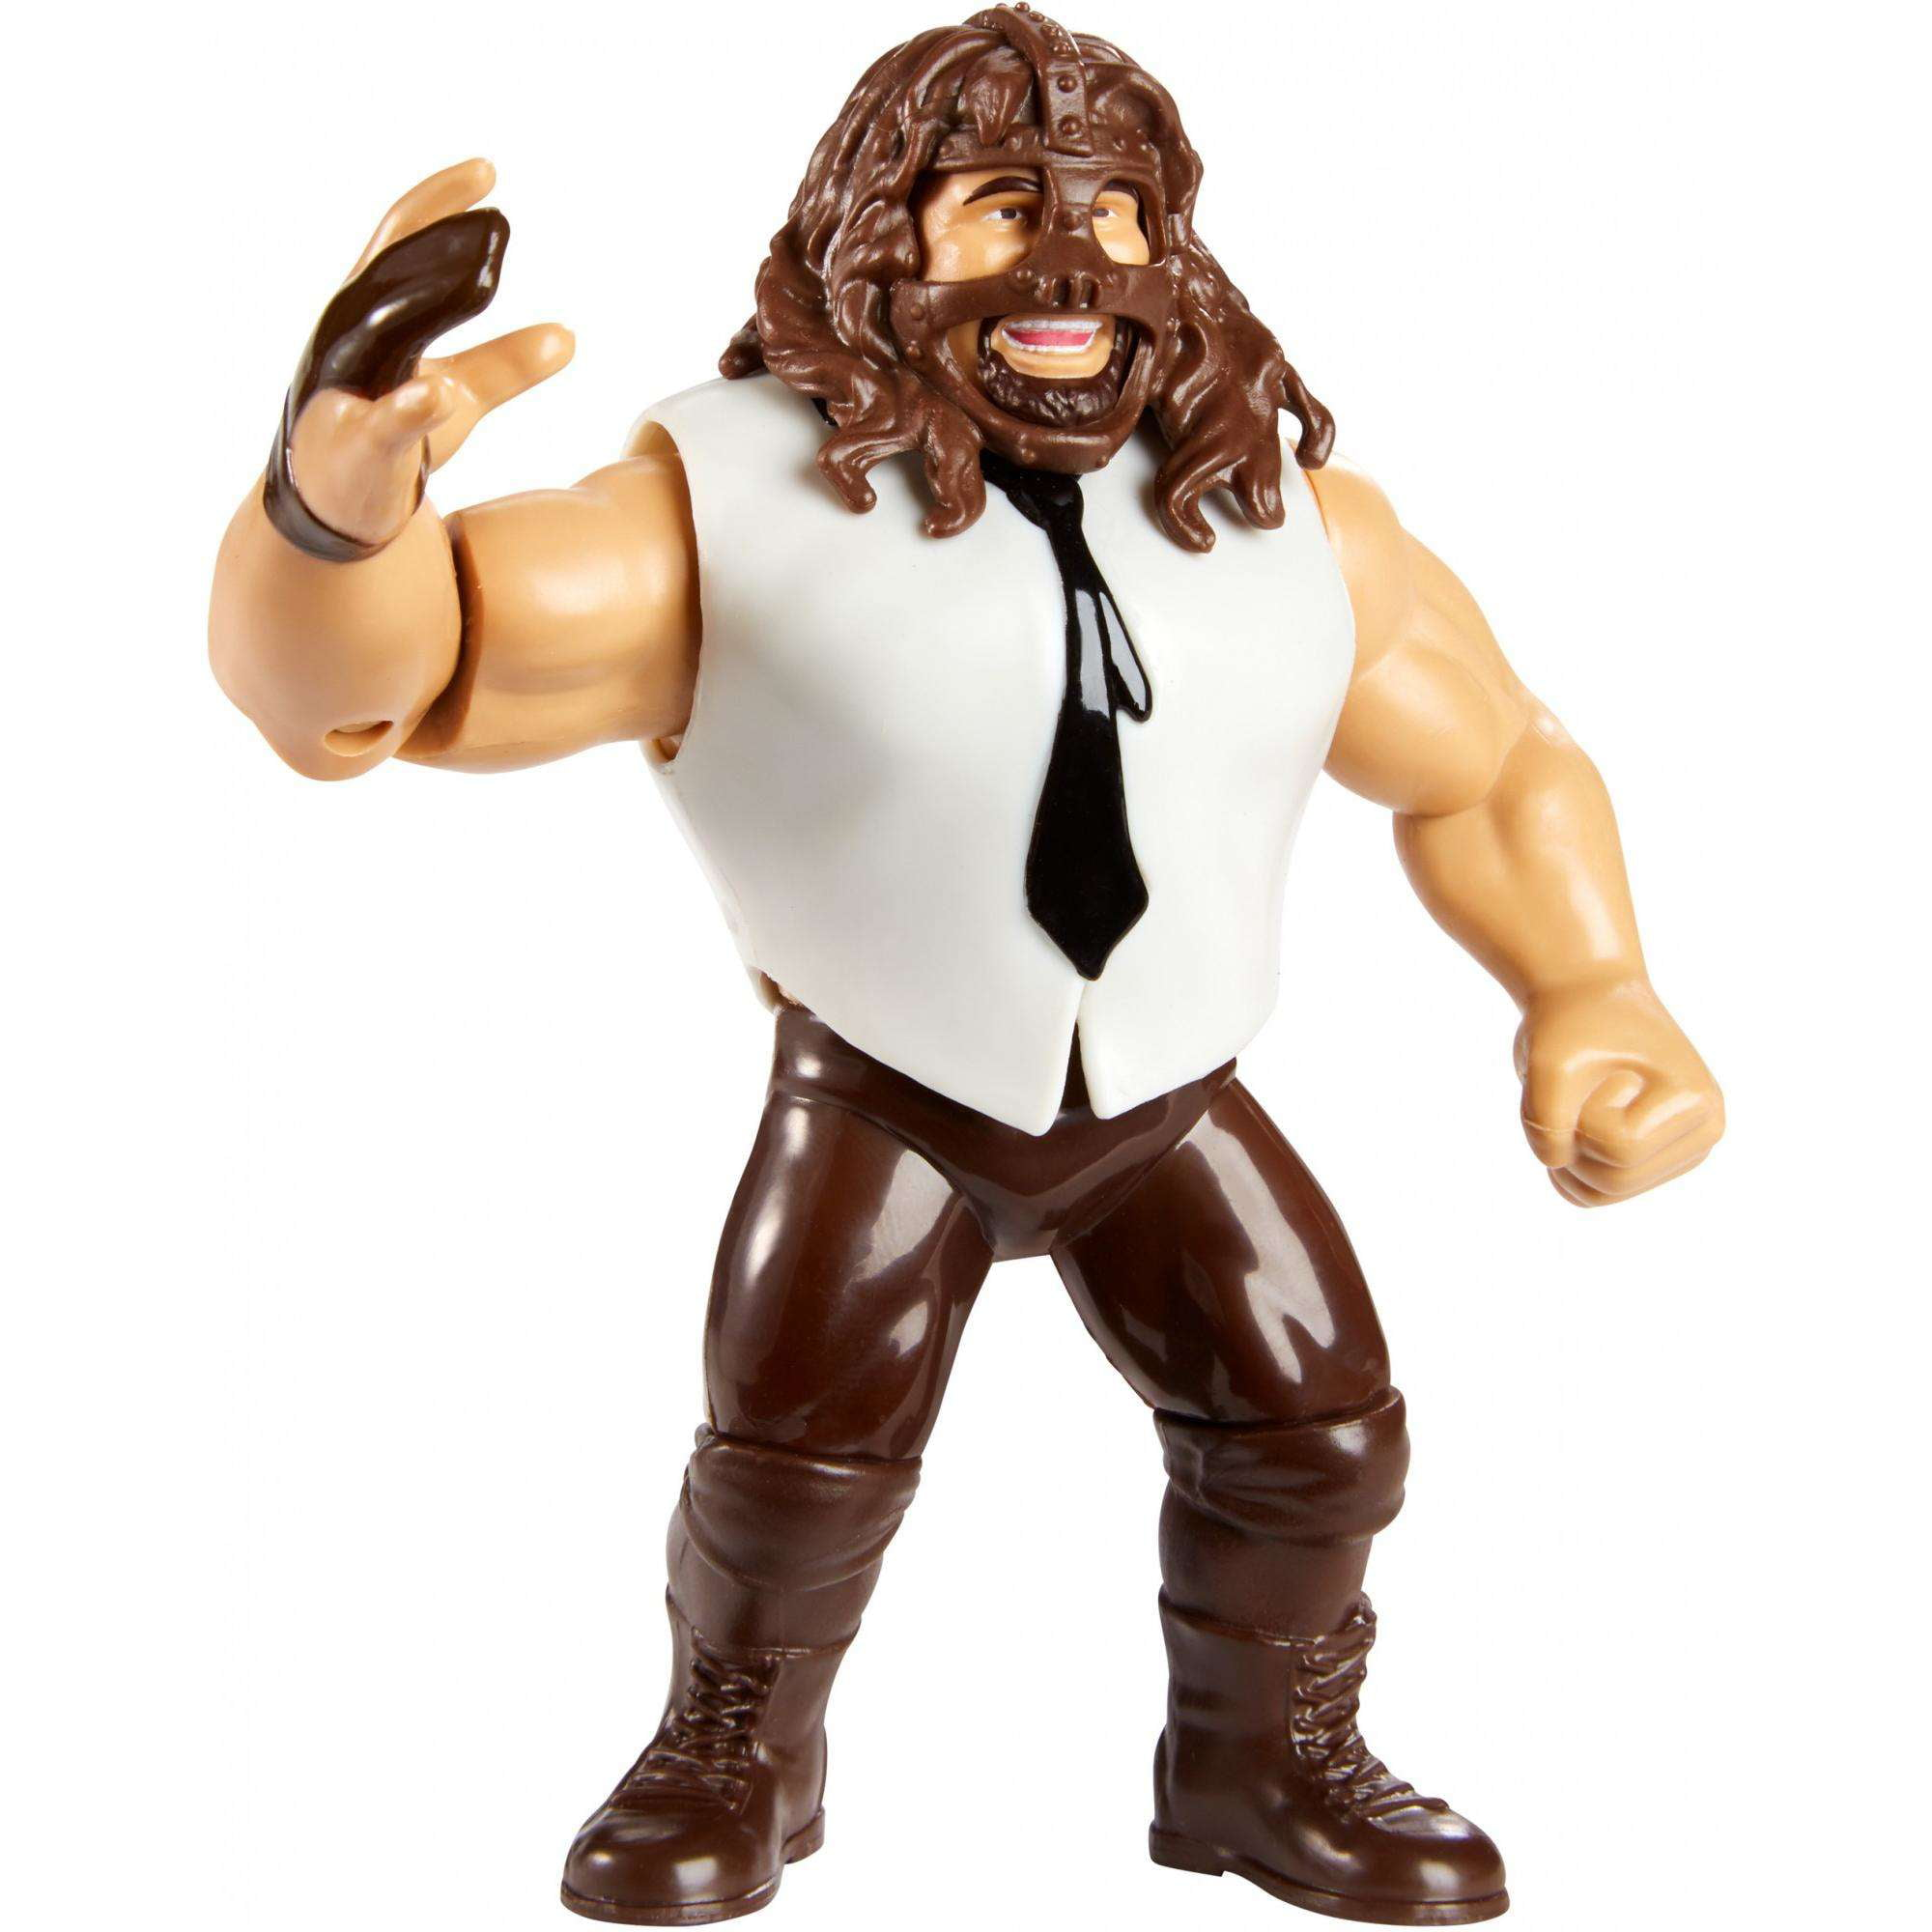 WWE Mankind Retro Action Figure by MATTEL BRANDS A DIVISION OF MATTEL DIRECT IMPORT INC